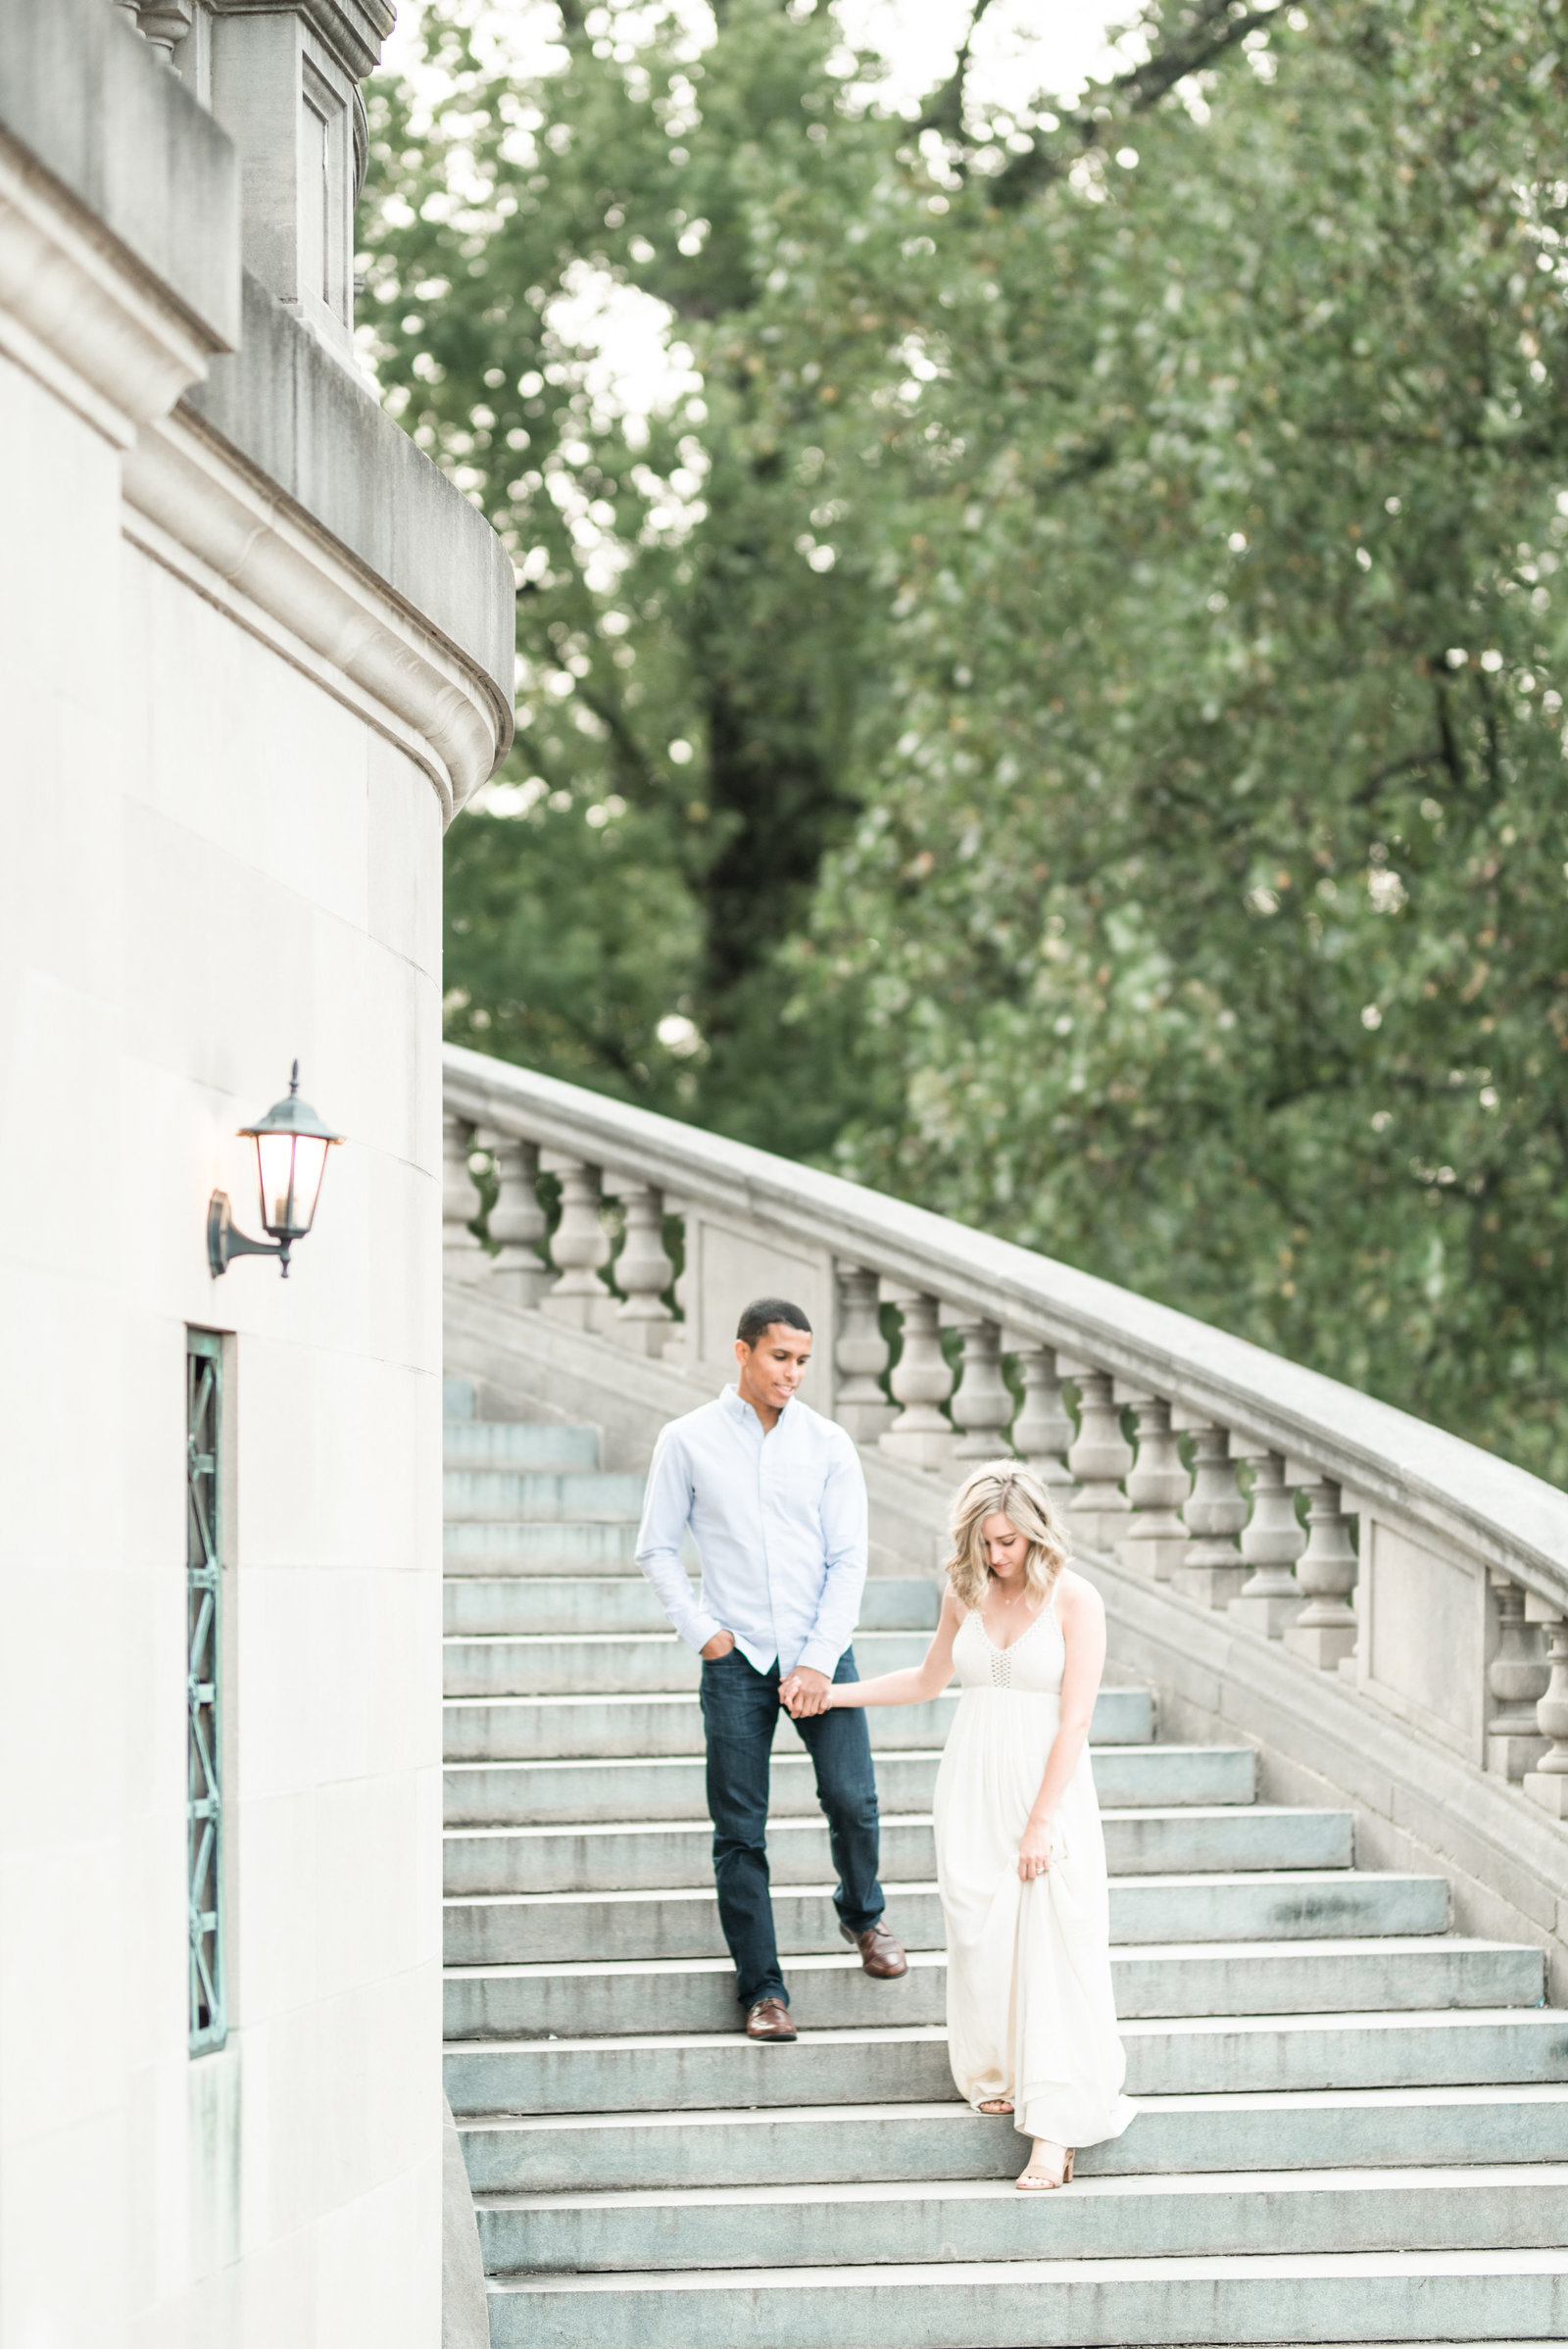 byrd-park-carillon-tower-richmond-virginia-engagement-photo238